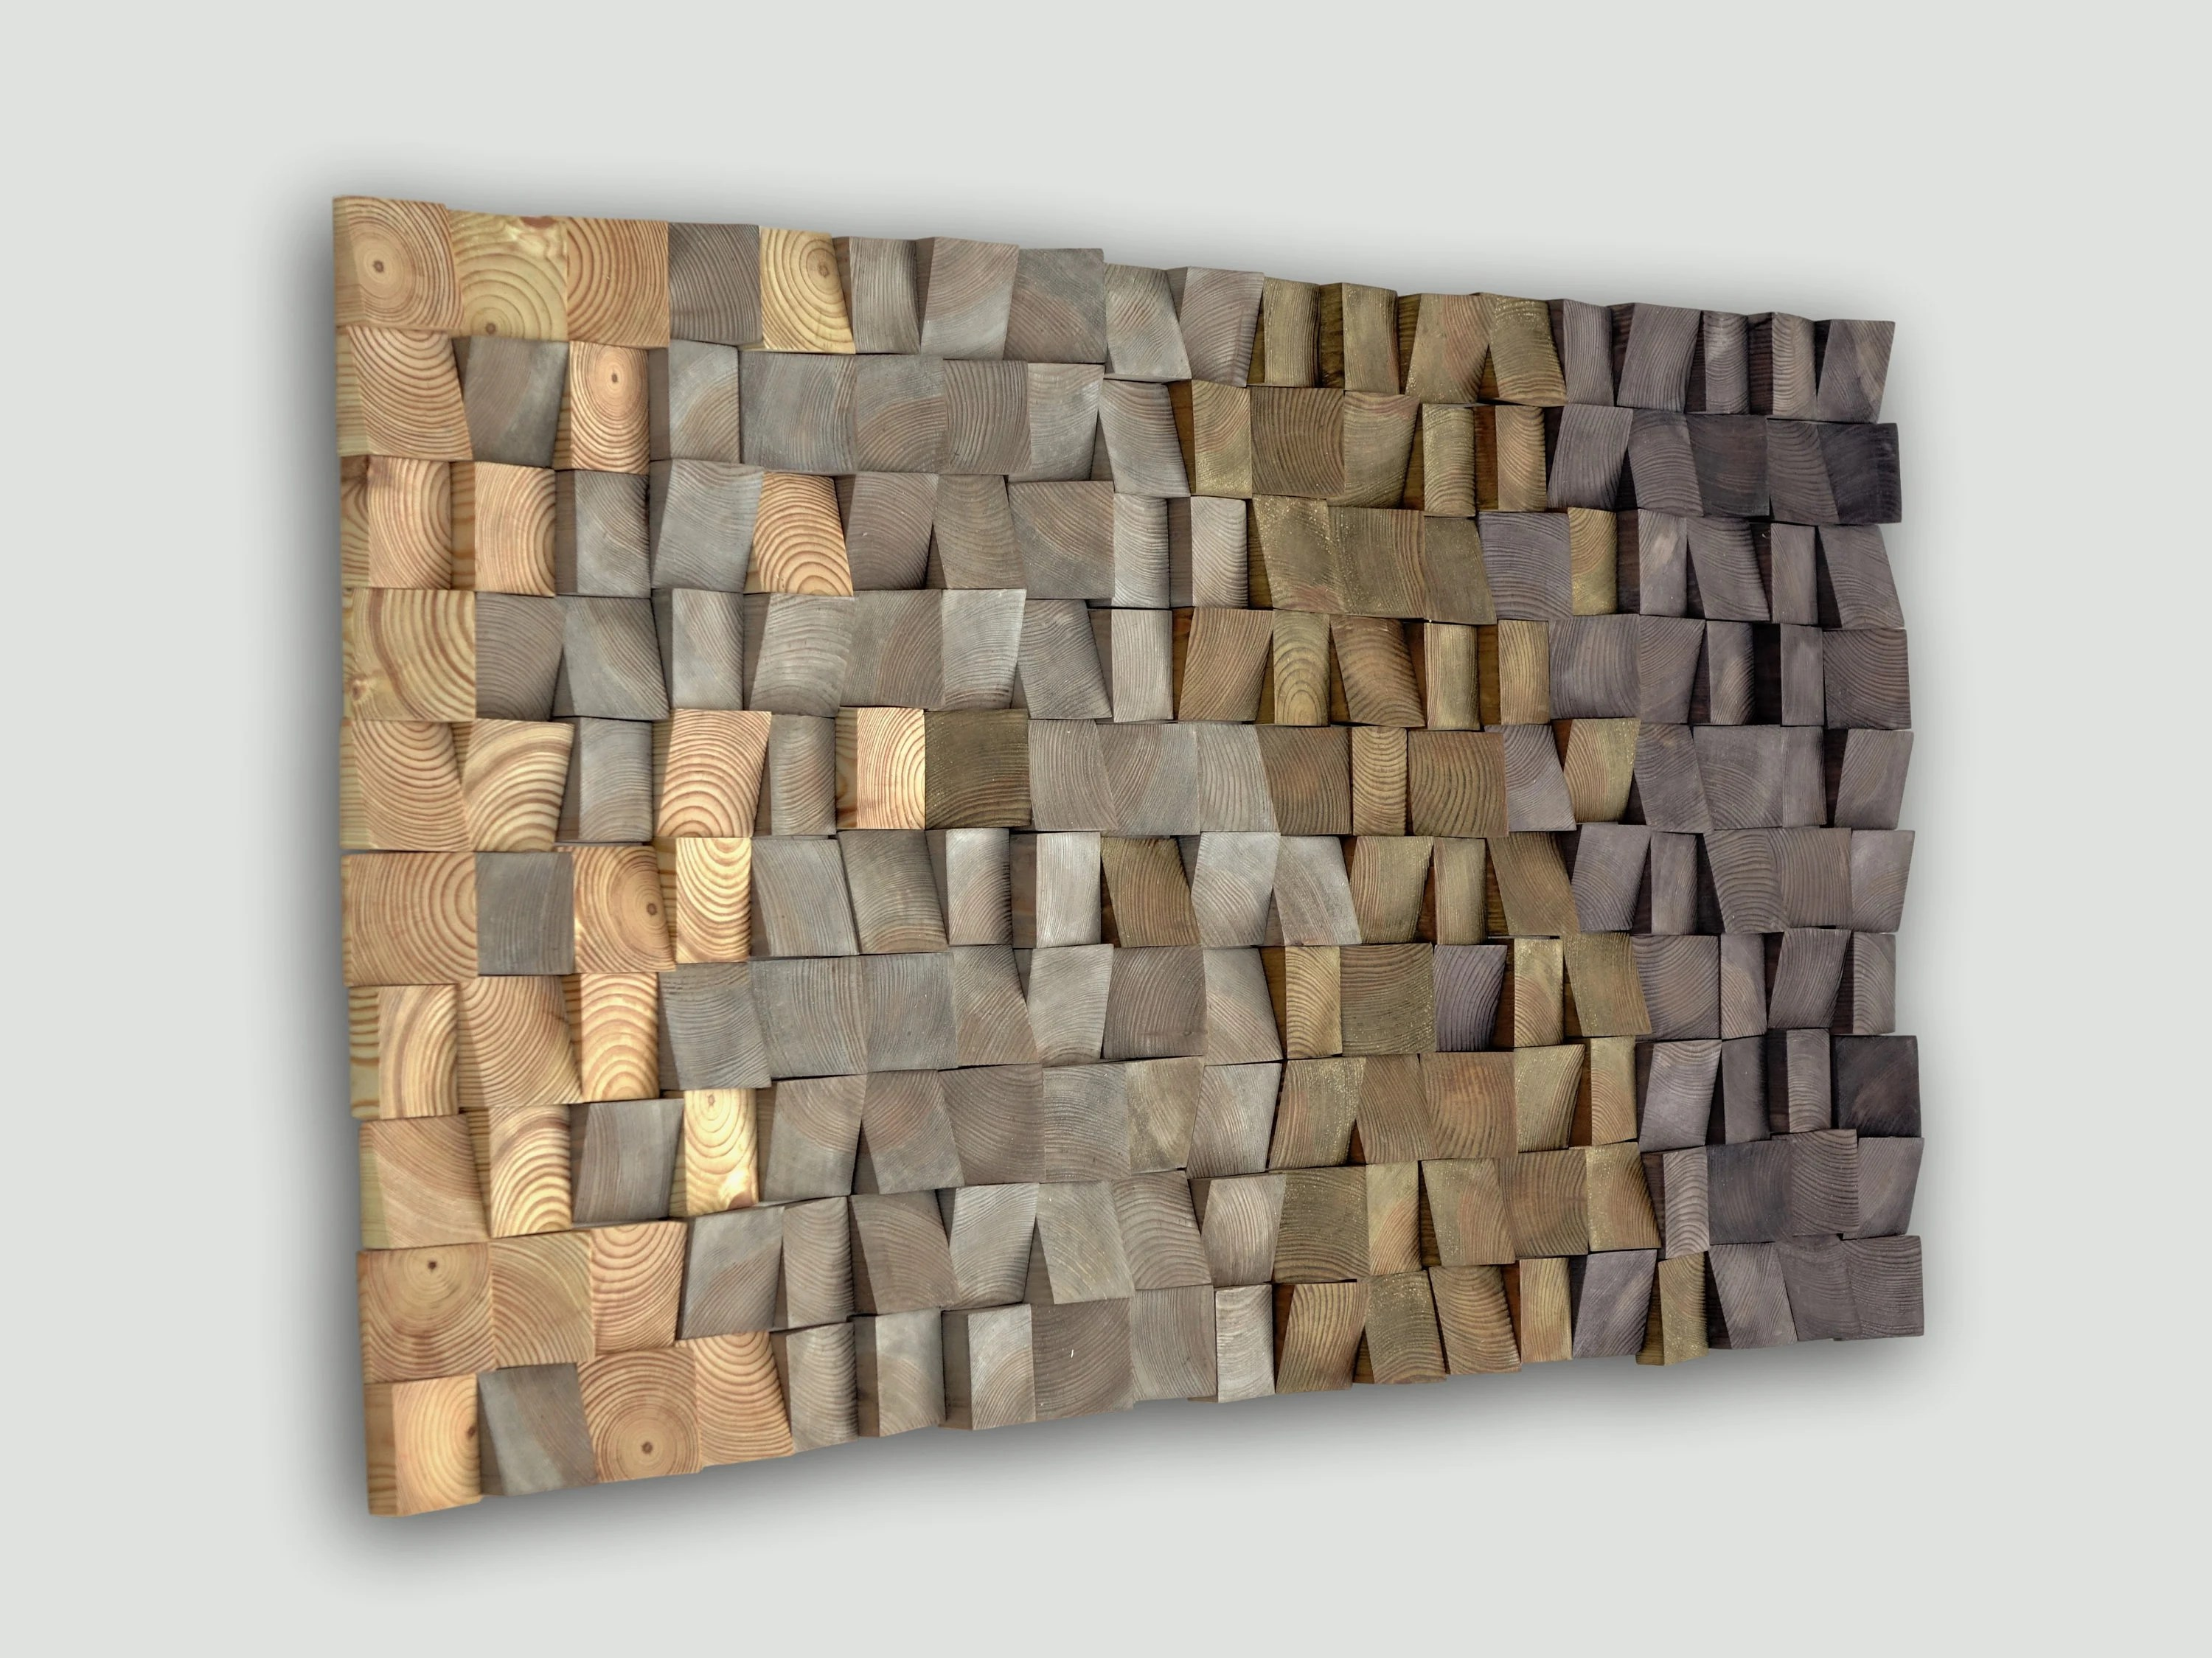 Textured Wood Wall Art, Mosaic Wall Hanging, 3D Wood Wall